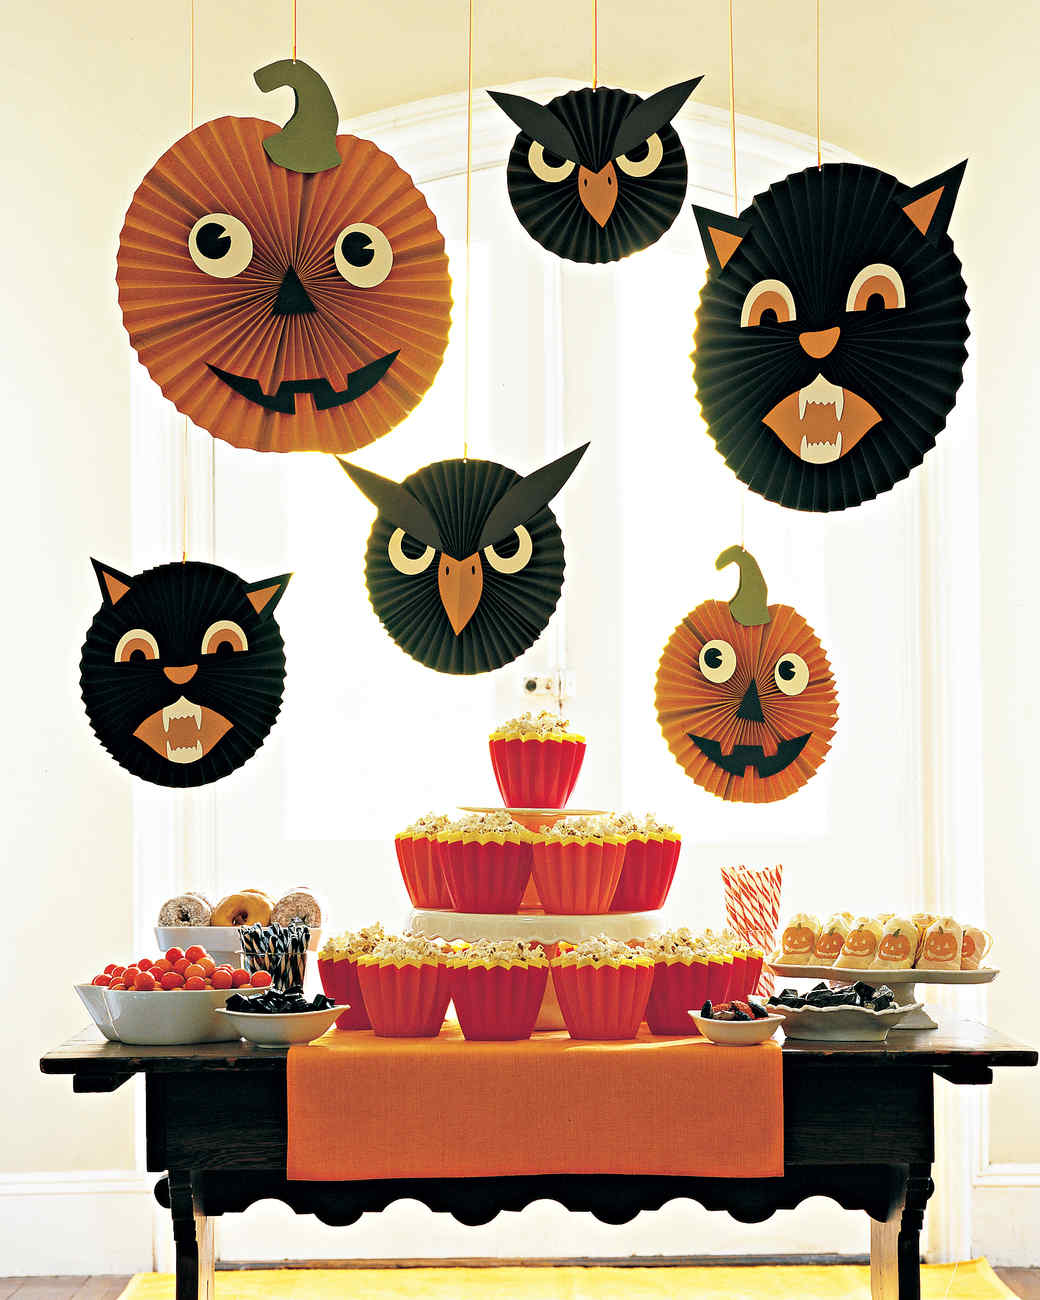 Halloween Crafts And Decorations: 12 Frightfully Adorable Halloween Crafts For Preschoolers